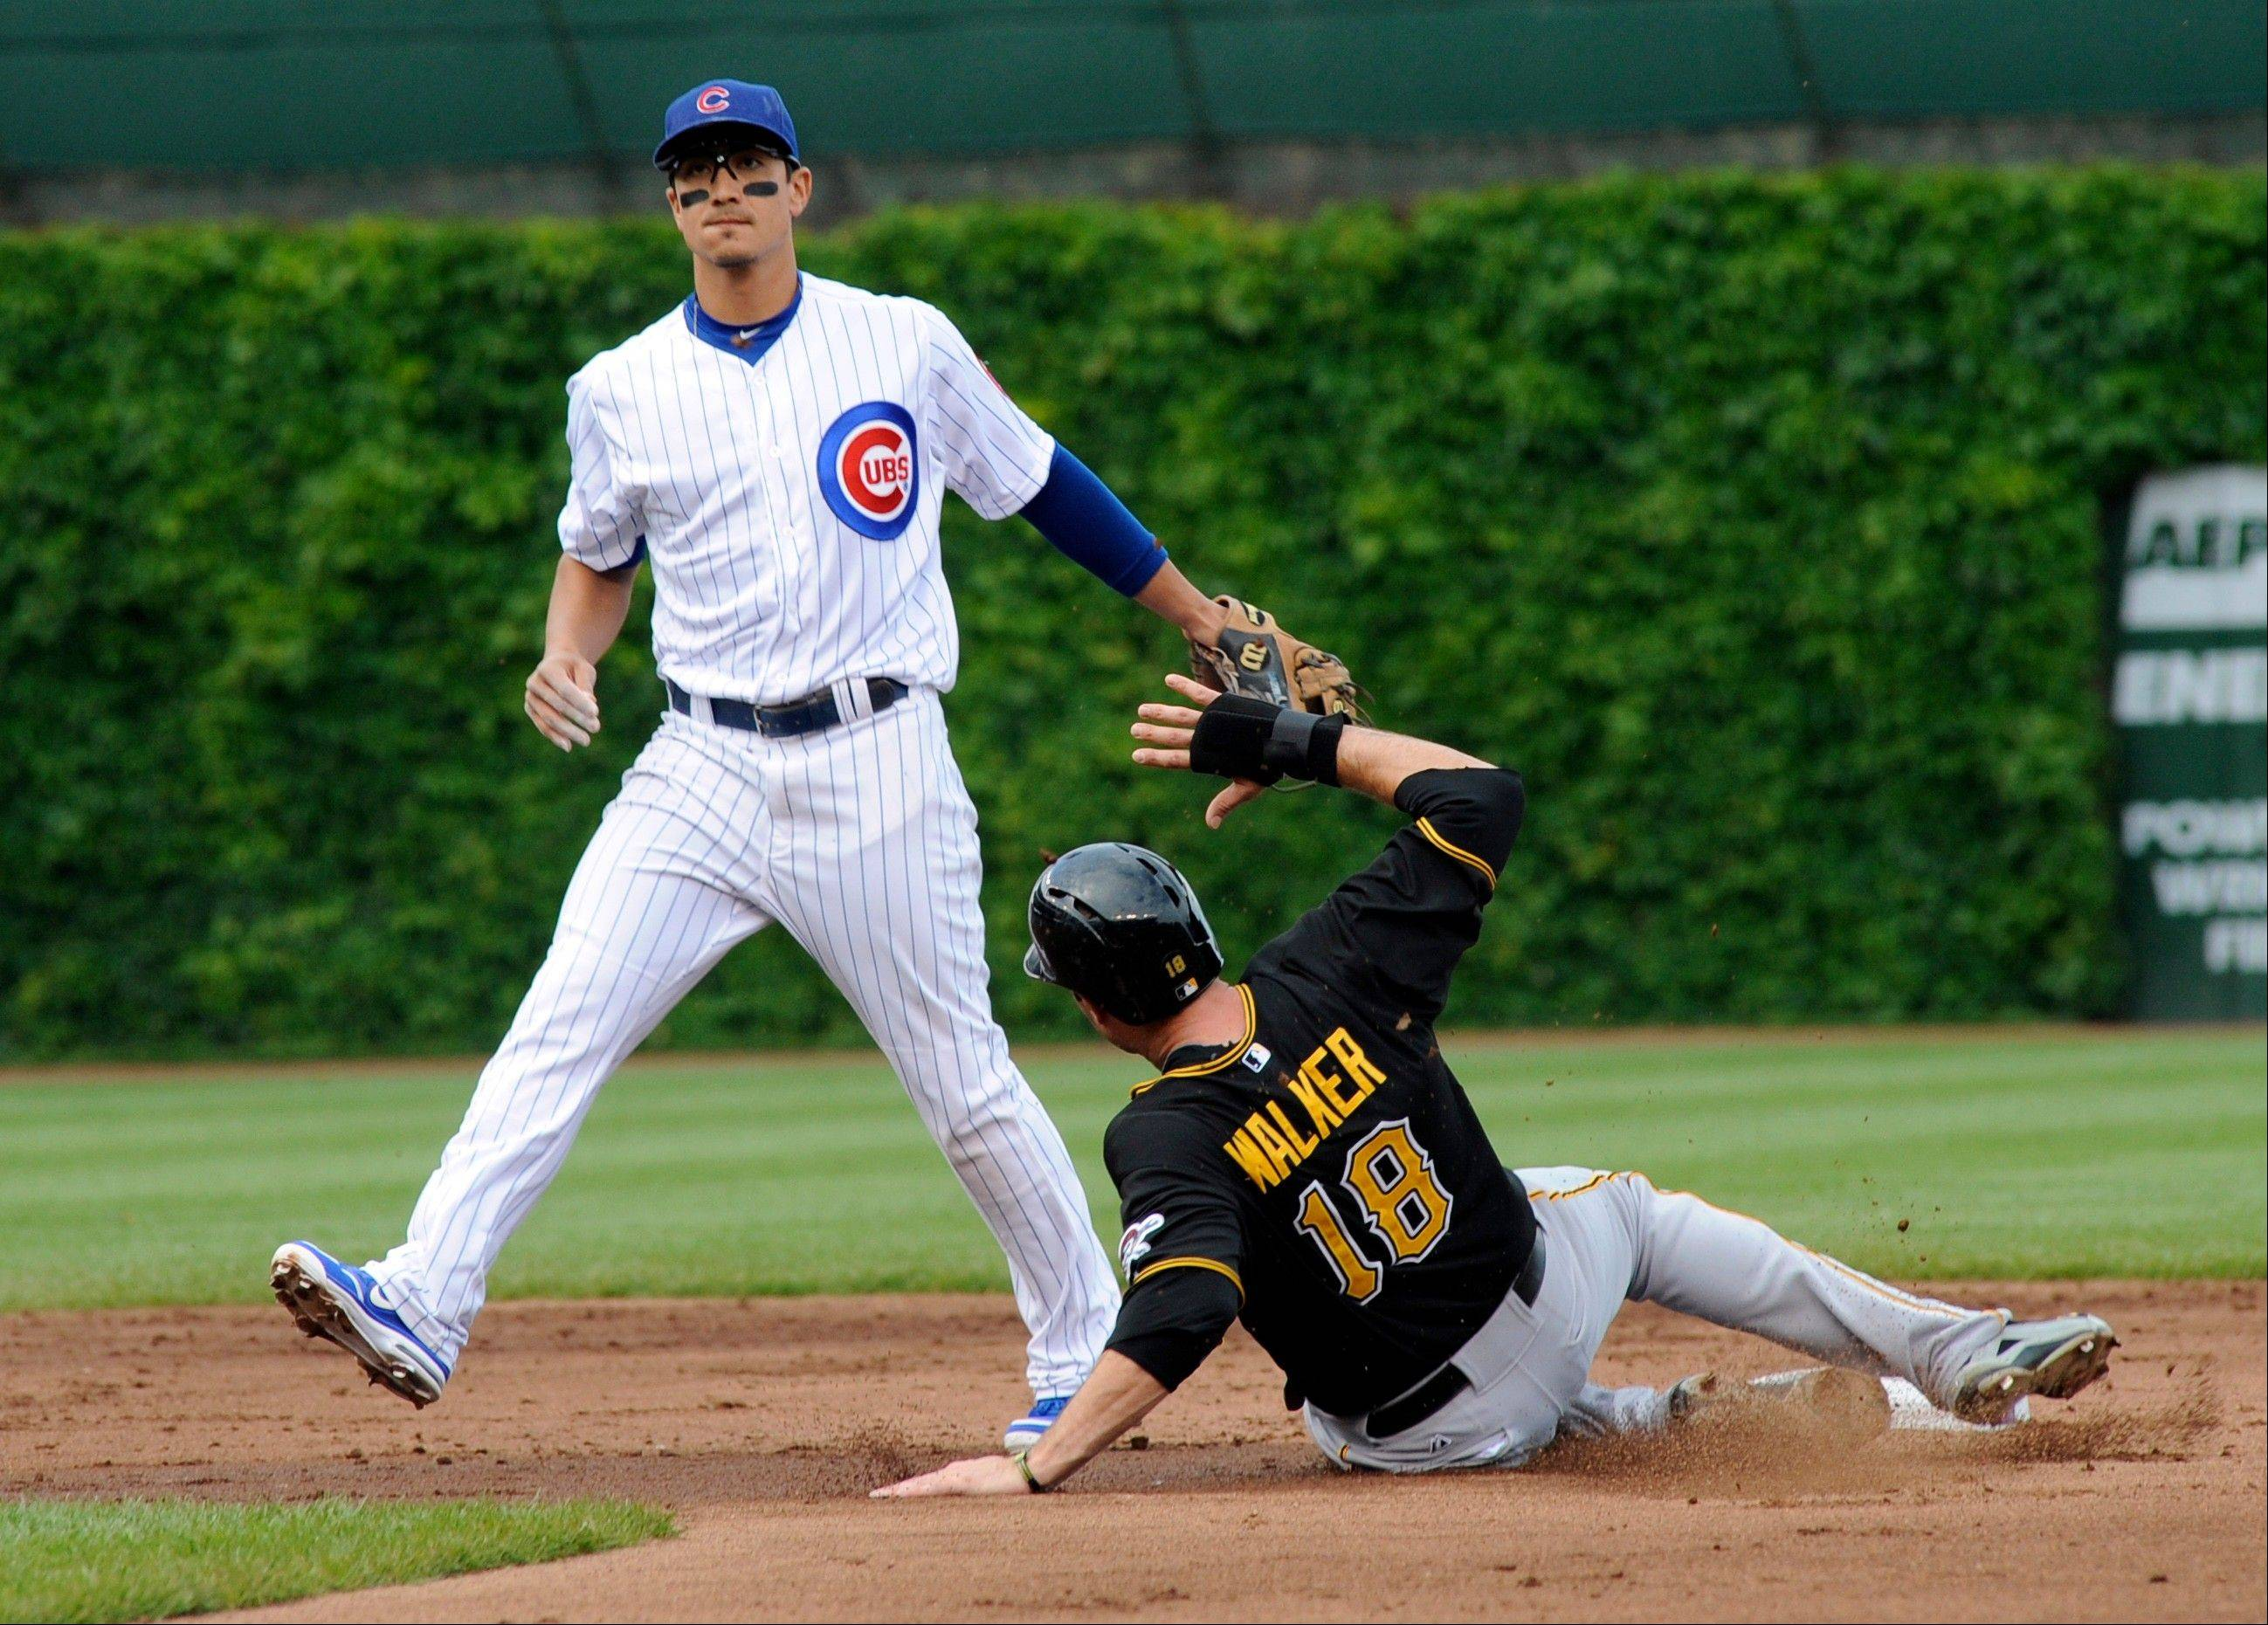 Pittsburgh Pirates' Neil Walker, right, is out at second base after Chicago Cubs' Darwin Barney stepped on the base during a baseball game on Saturday June 8, 2013, in Chicago, Ill. (AP Photo/Joe Raymond)